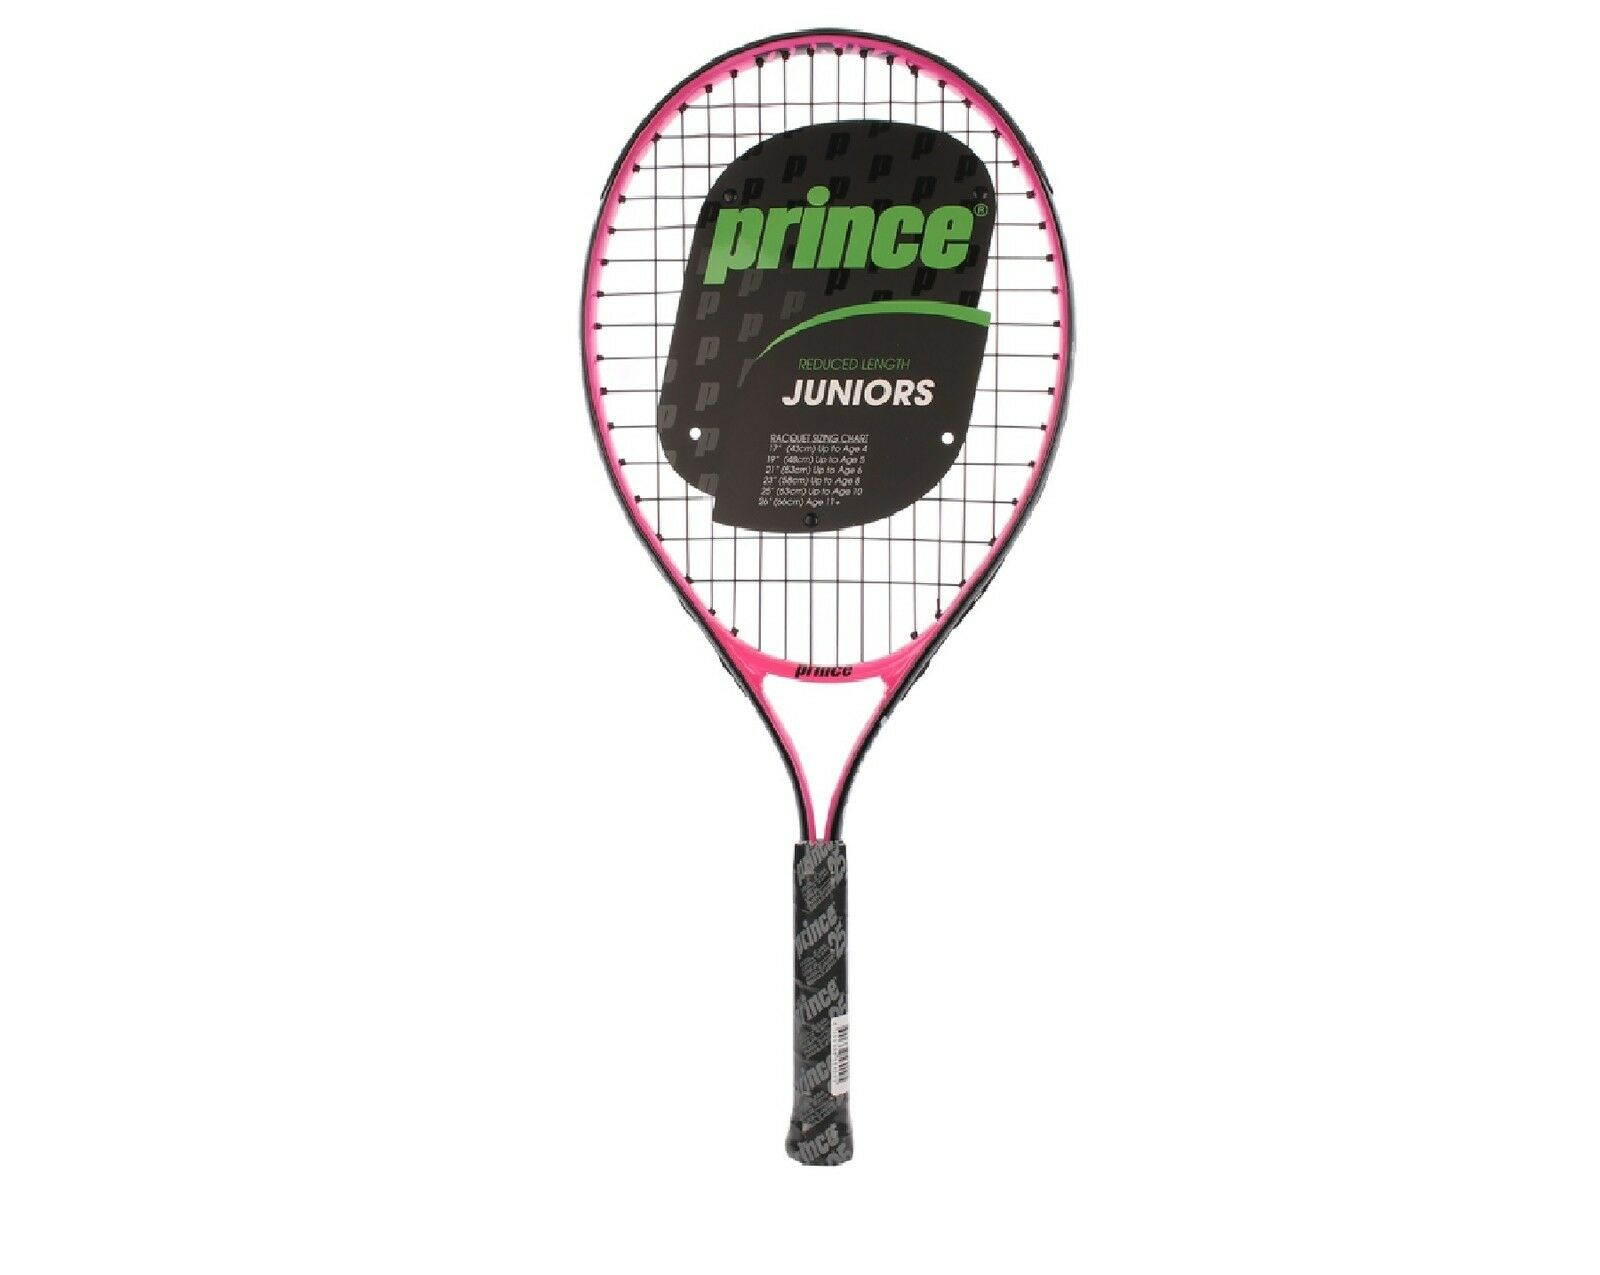 PRINCE 7T43A5050 - Raquette Tennis Pink 25 - Manche 4 - 0 NEUF